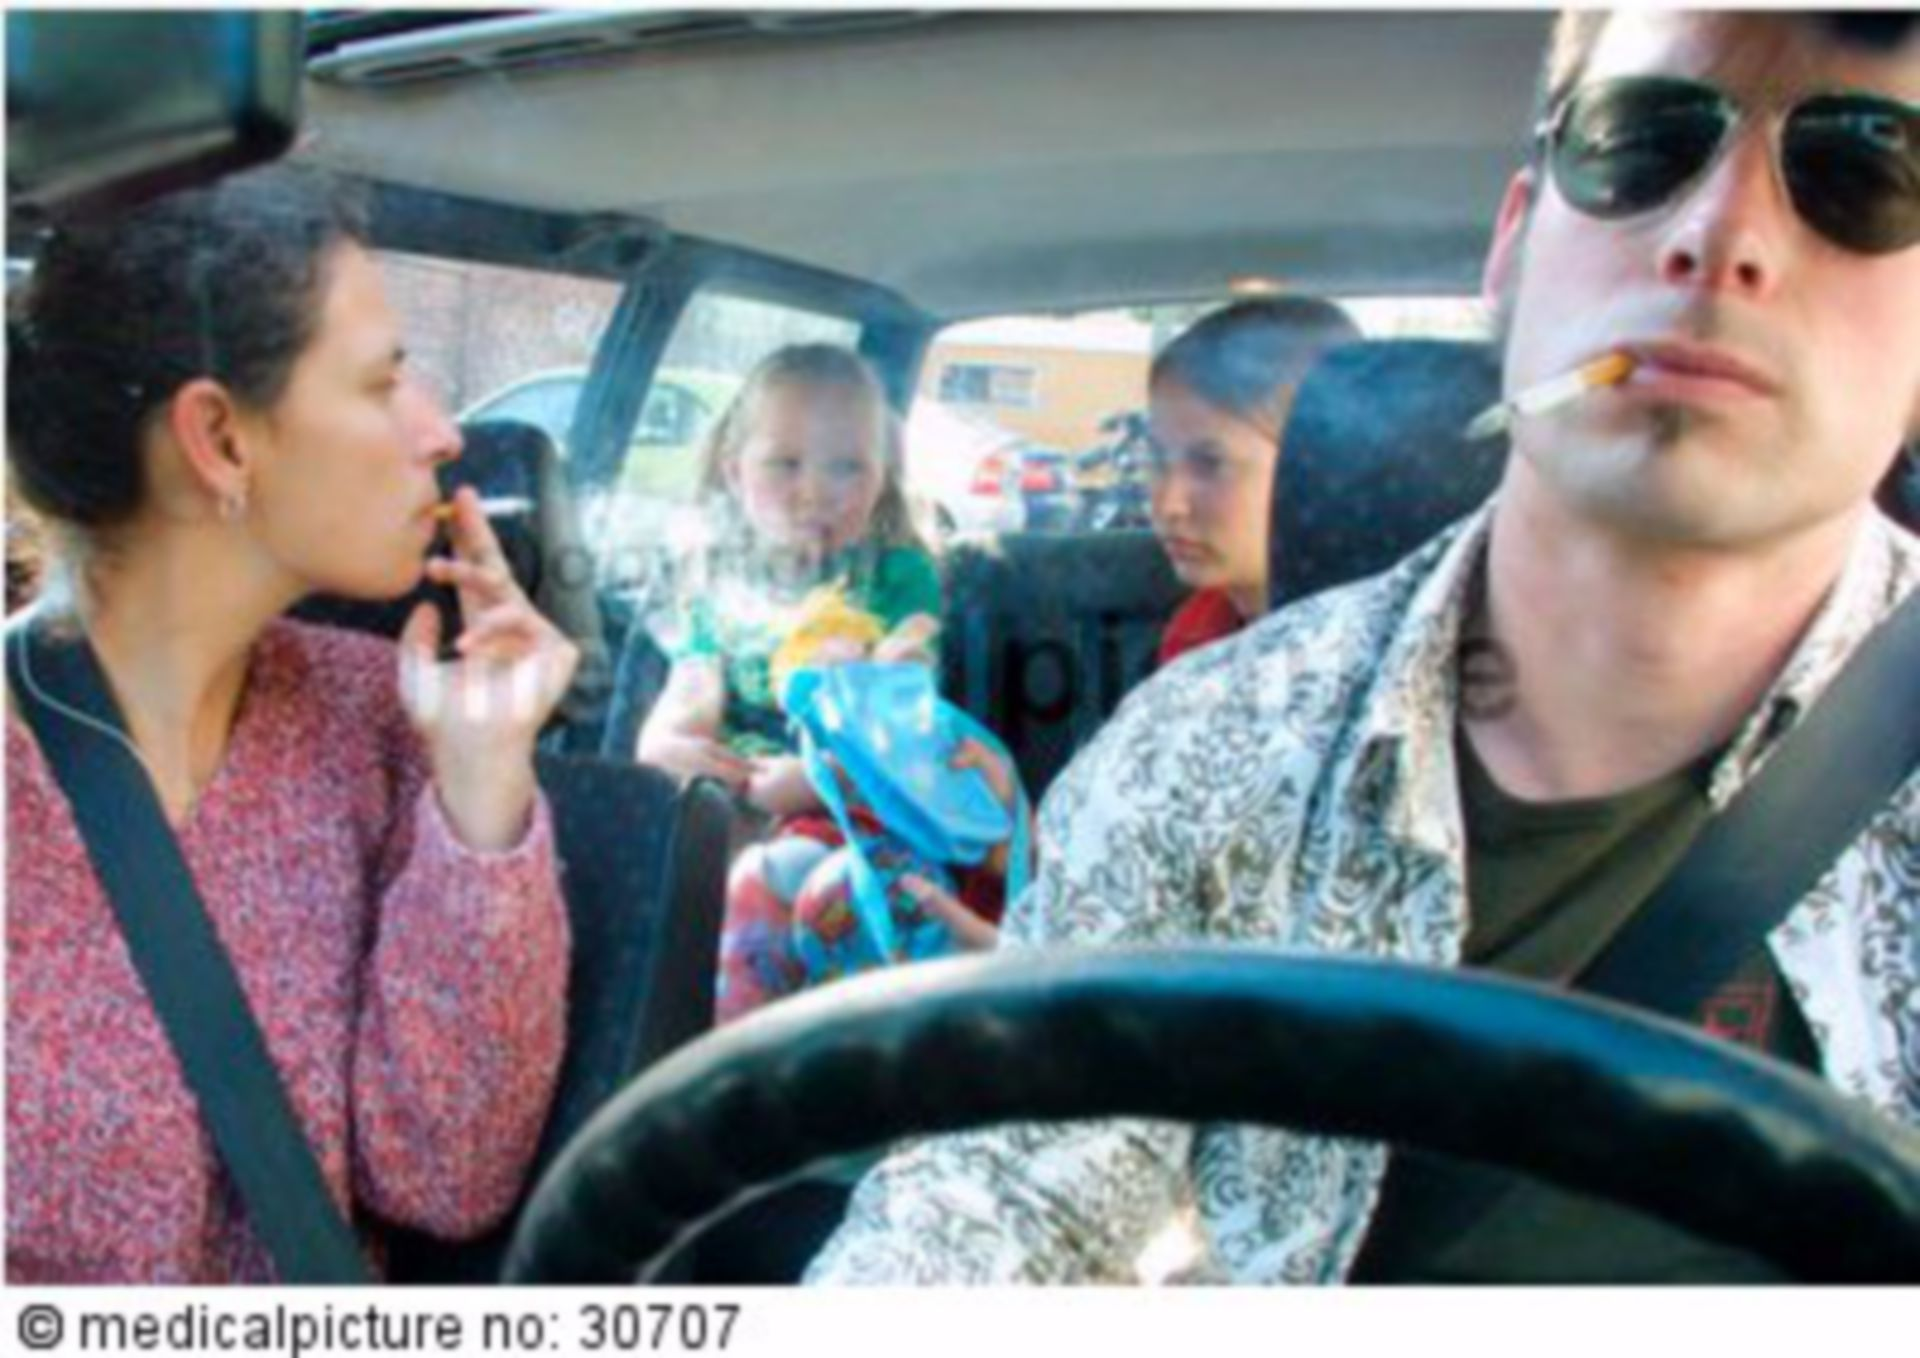 Smoking Parents with Children in a Car